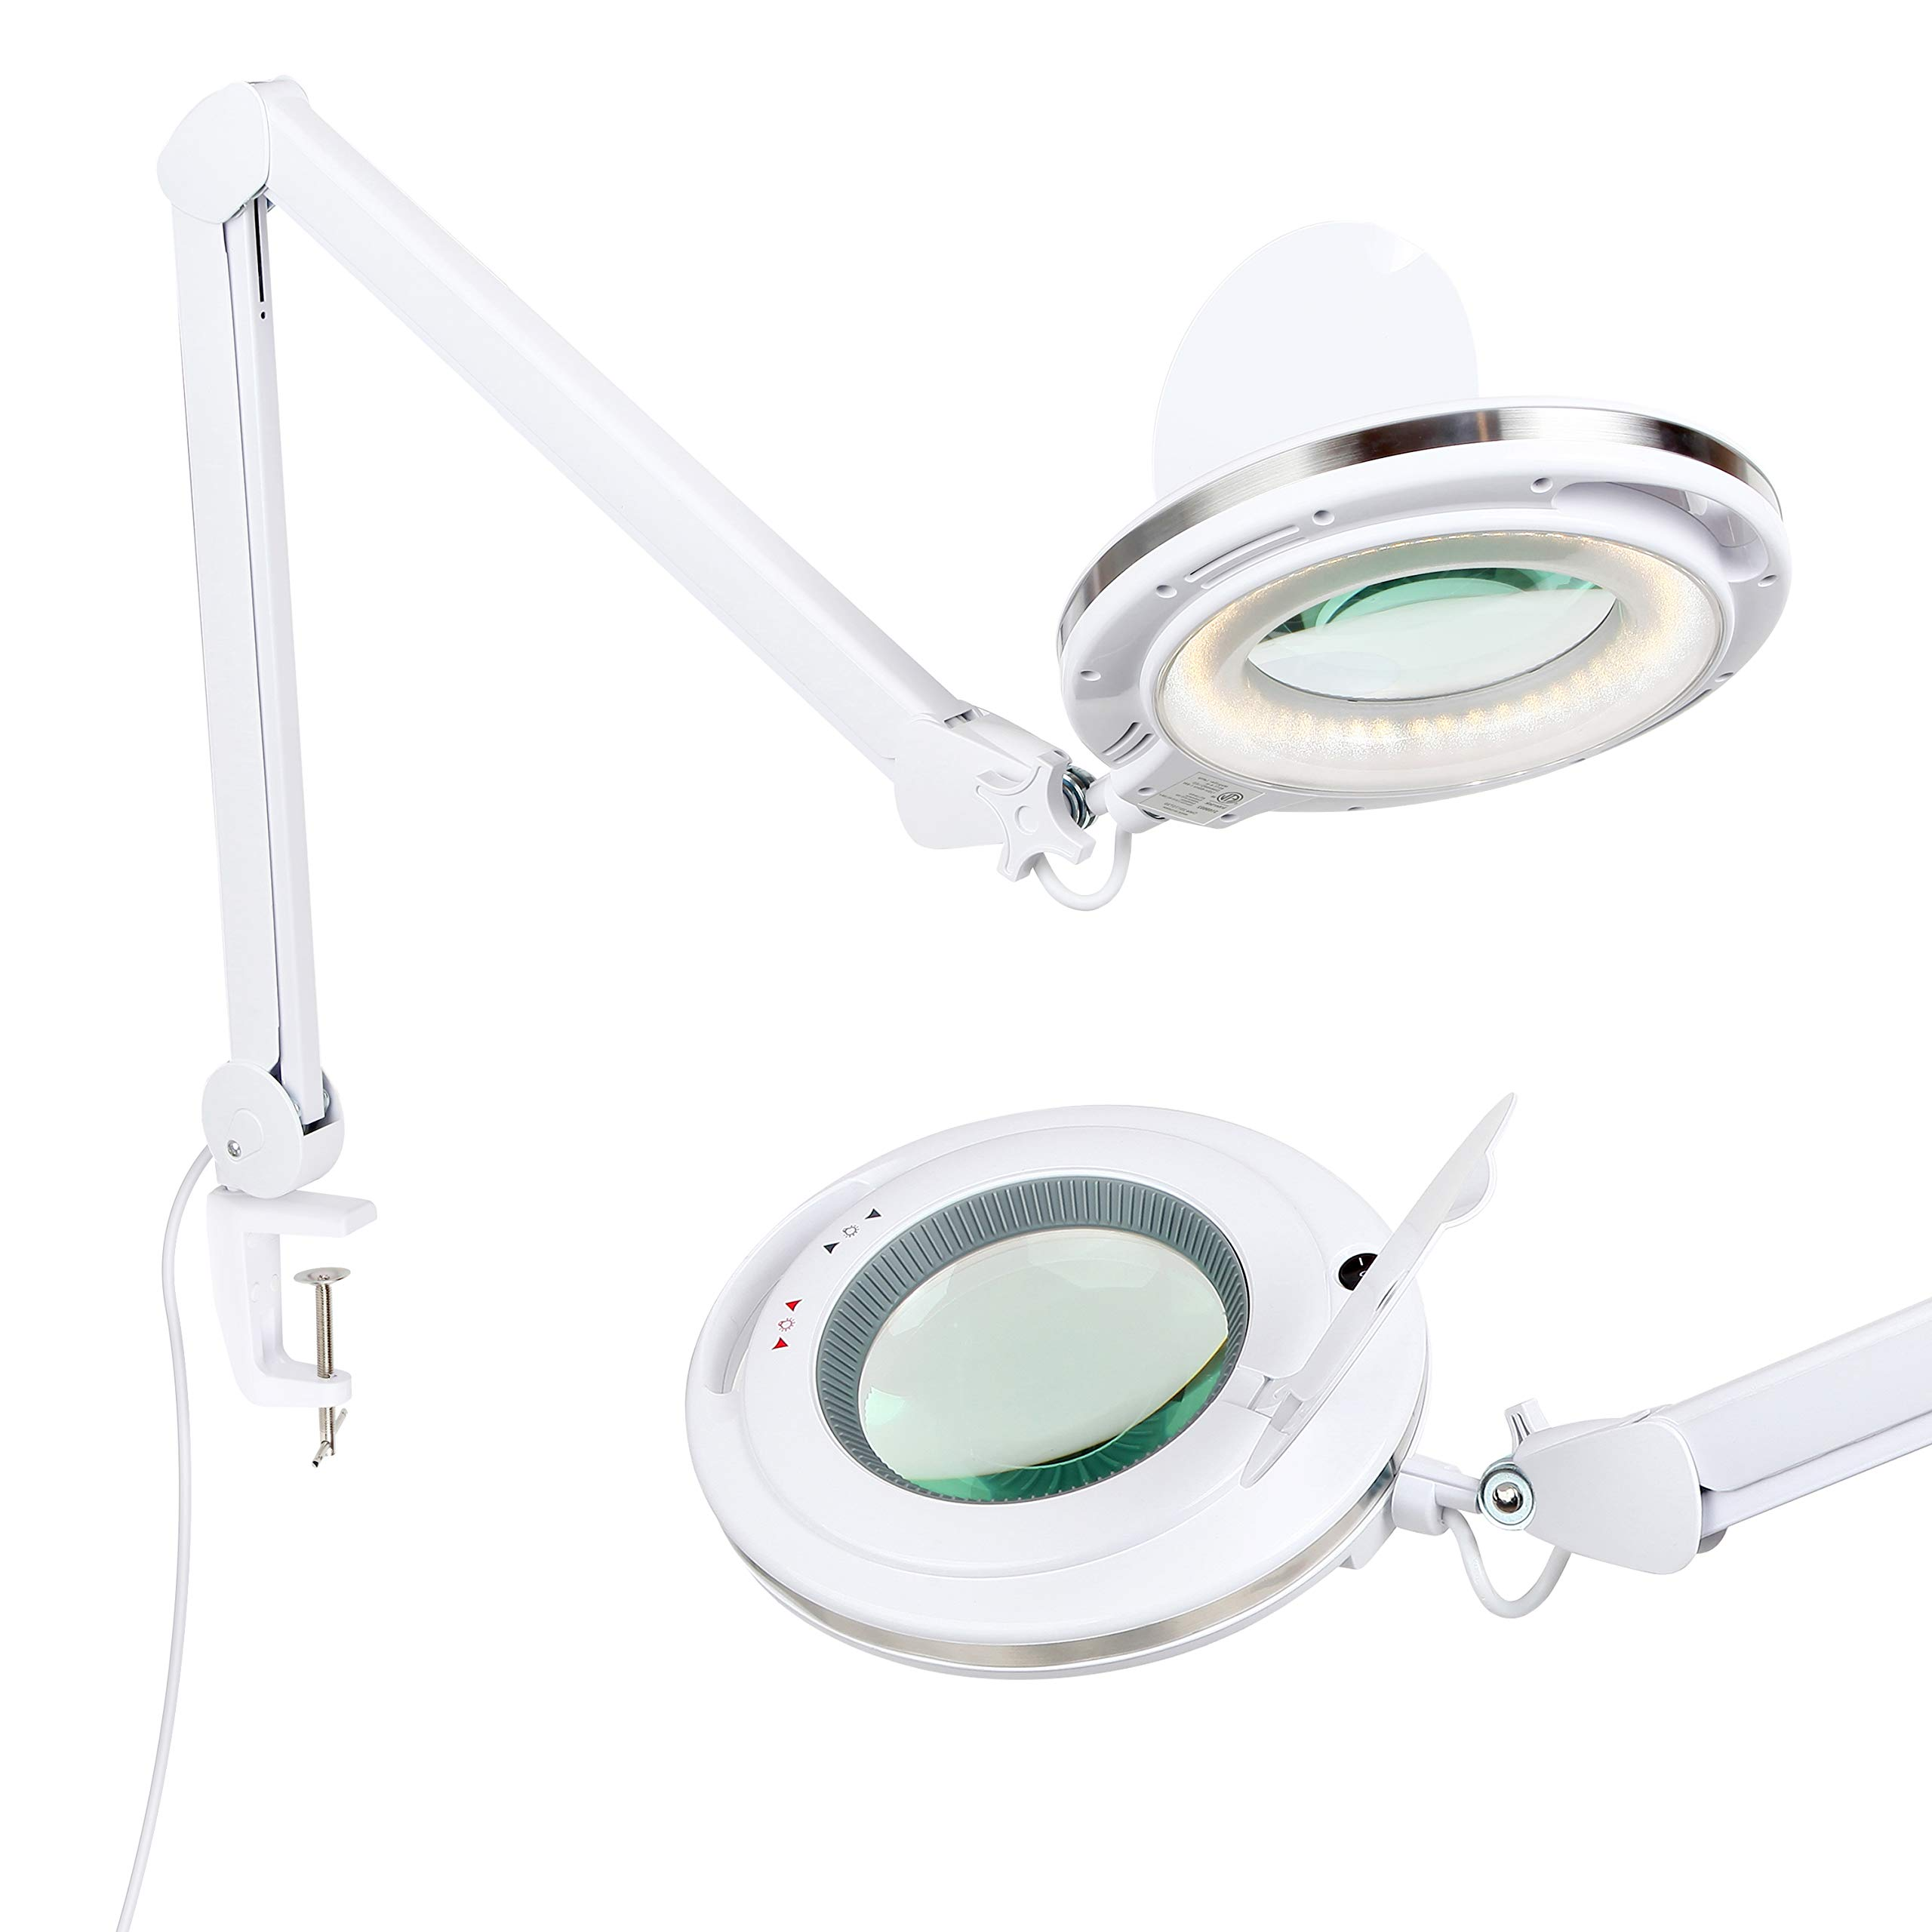 Brightech LightView PRO - LED Magnifying Glass Desk Lamp for Close Work - Bright, Lighted Magnifier for Reading, Crafts & Pro Tasks - Light Color Adjustable & Dimmable - 1.75x Magnification by Brightech